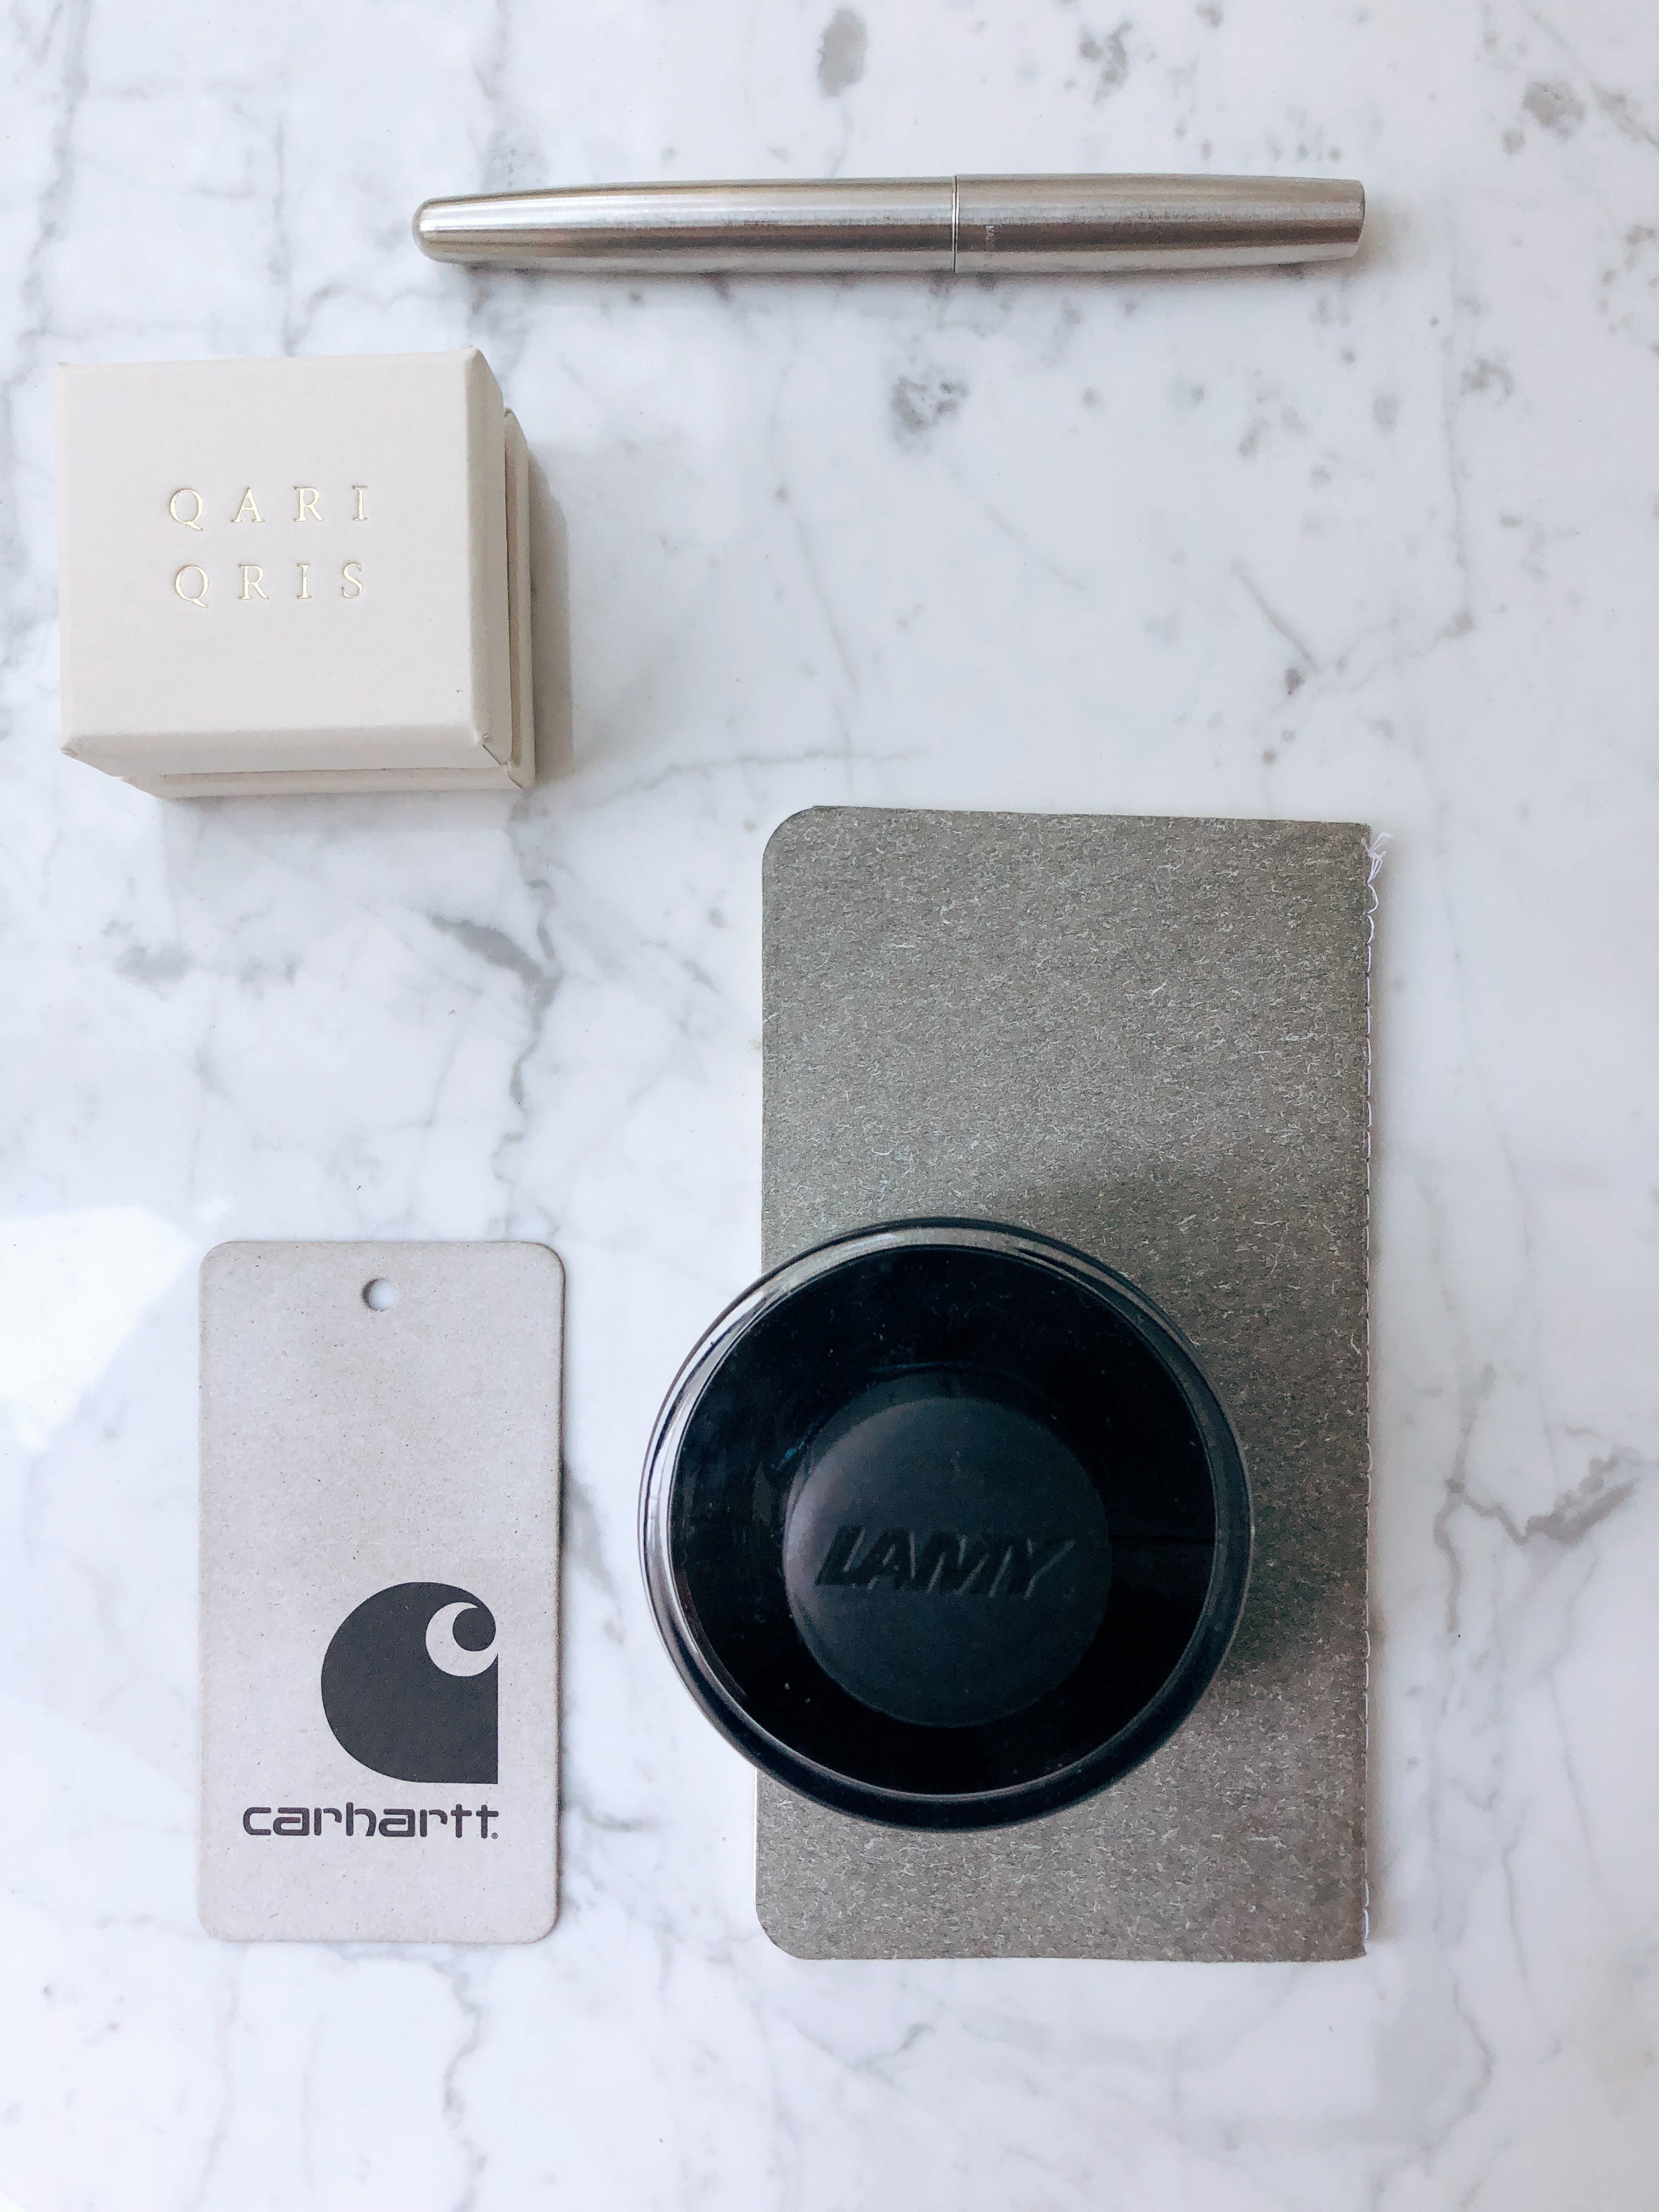 Carhartt Price Tag Beside Lamy Container on Marble Slab